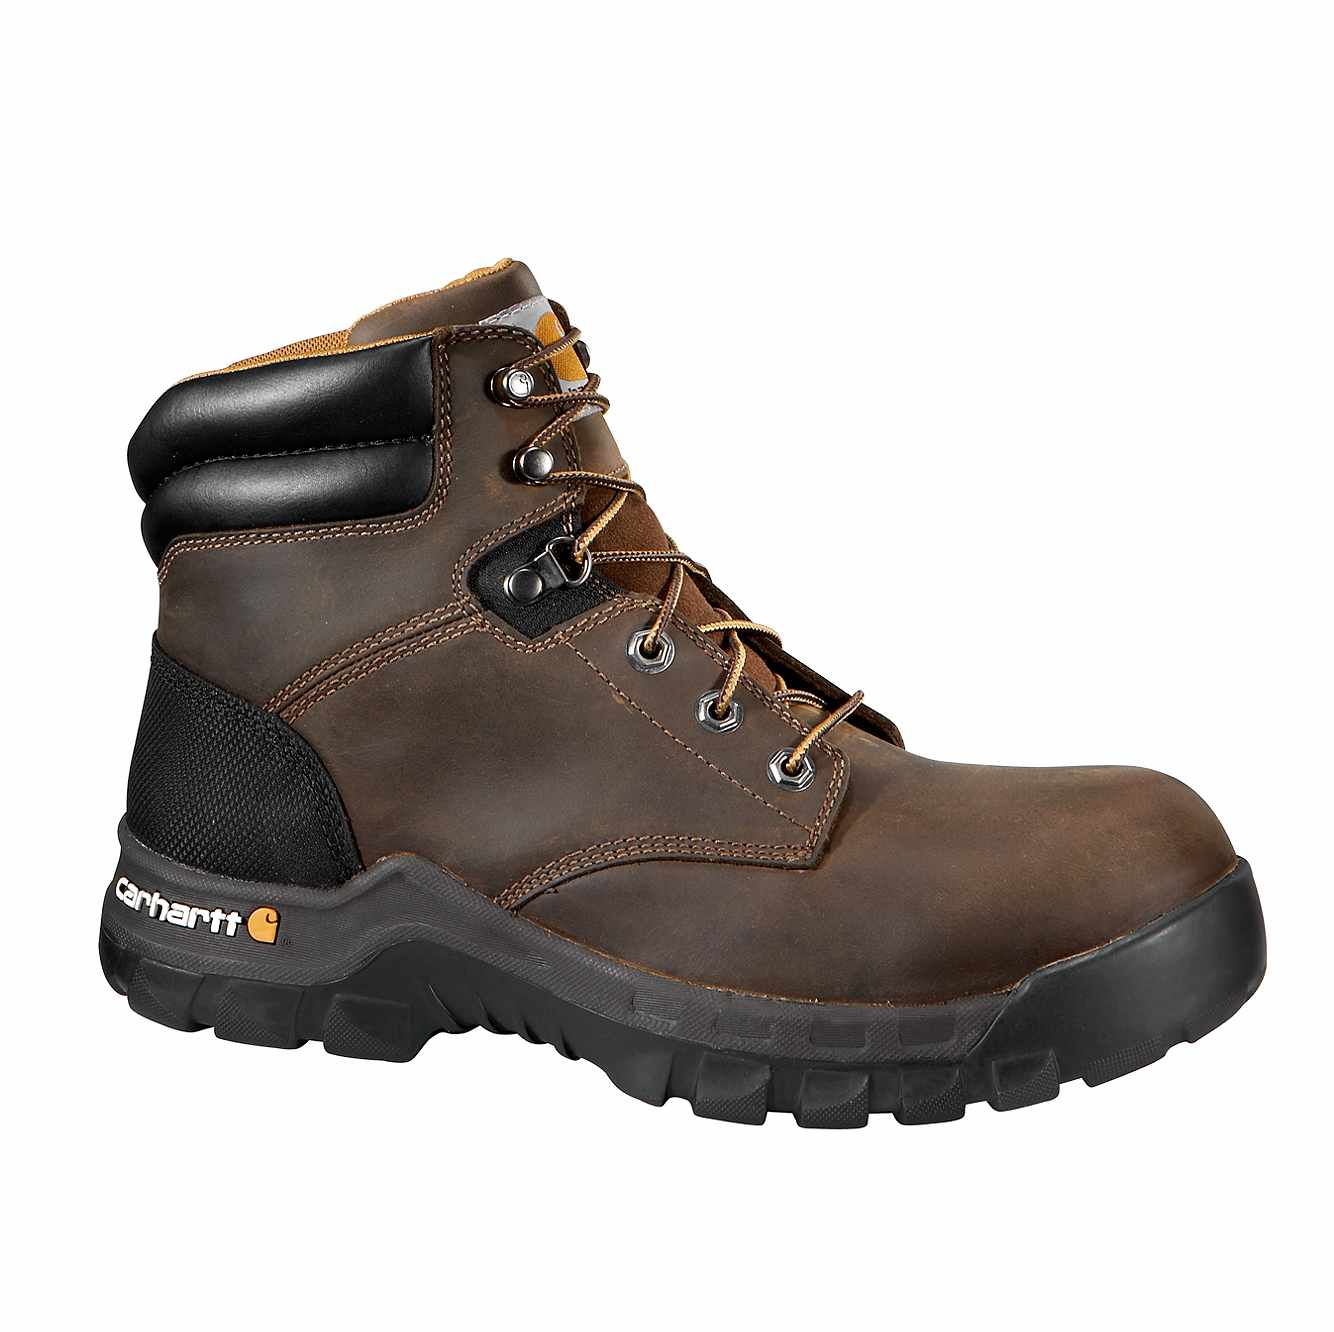 Picture of Rugged Flex® 6-Inch Composite Toe Work Boot in Brown Oil Tanned